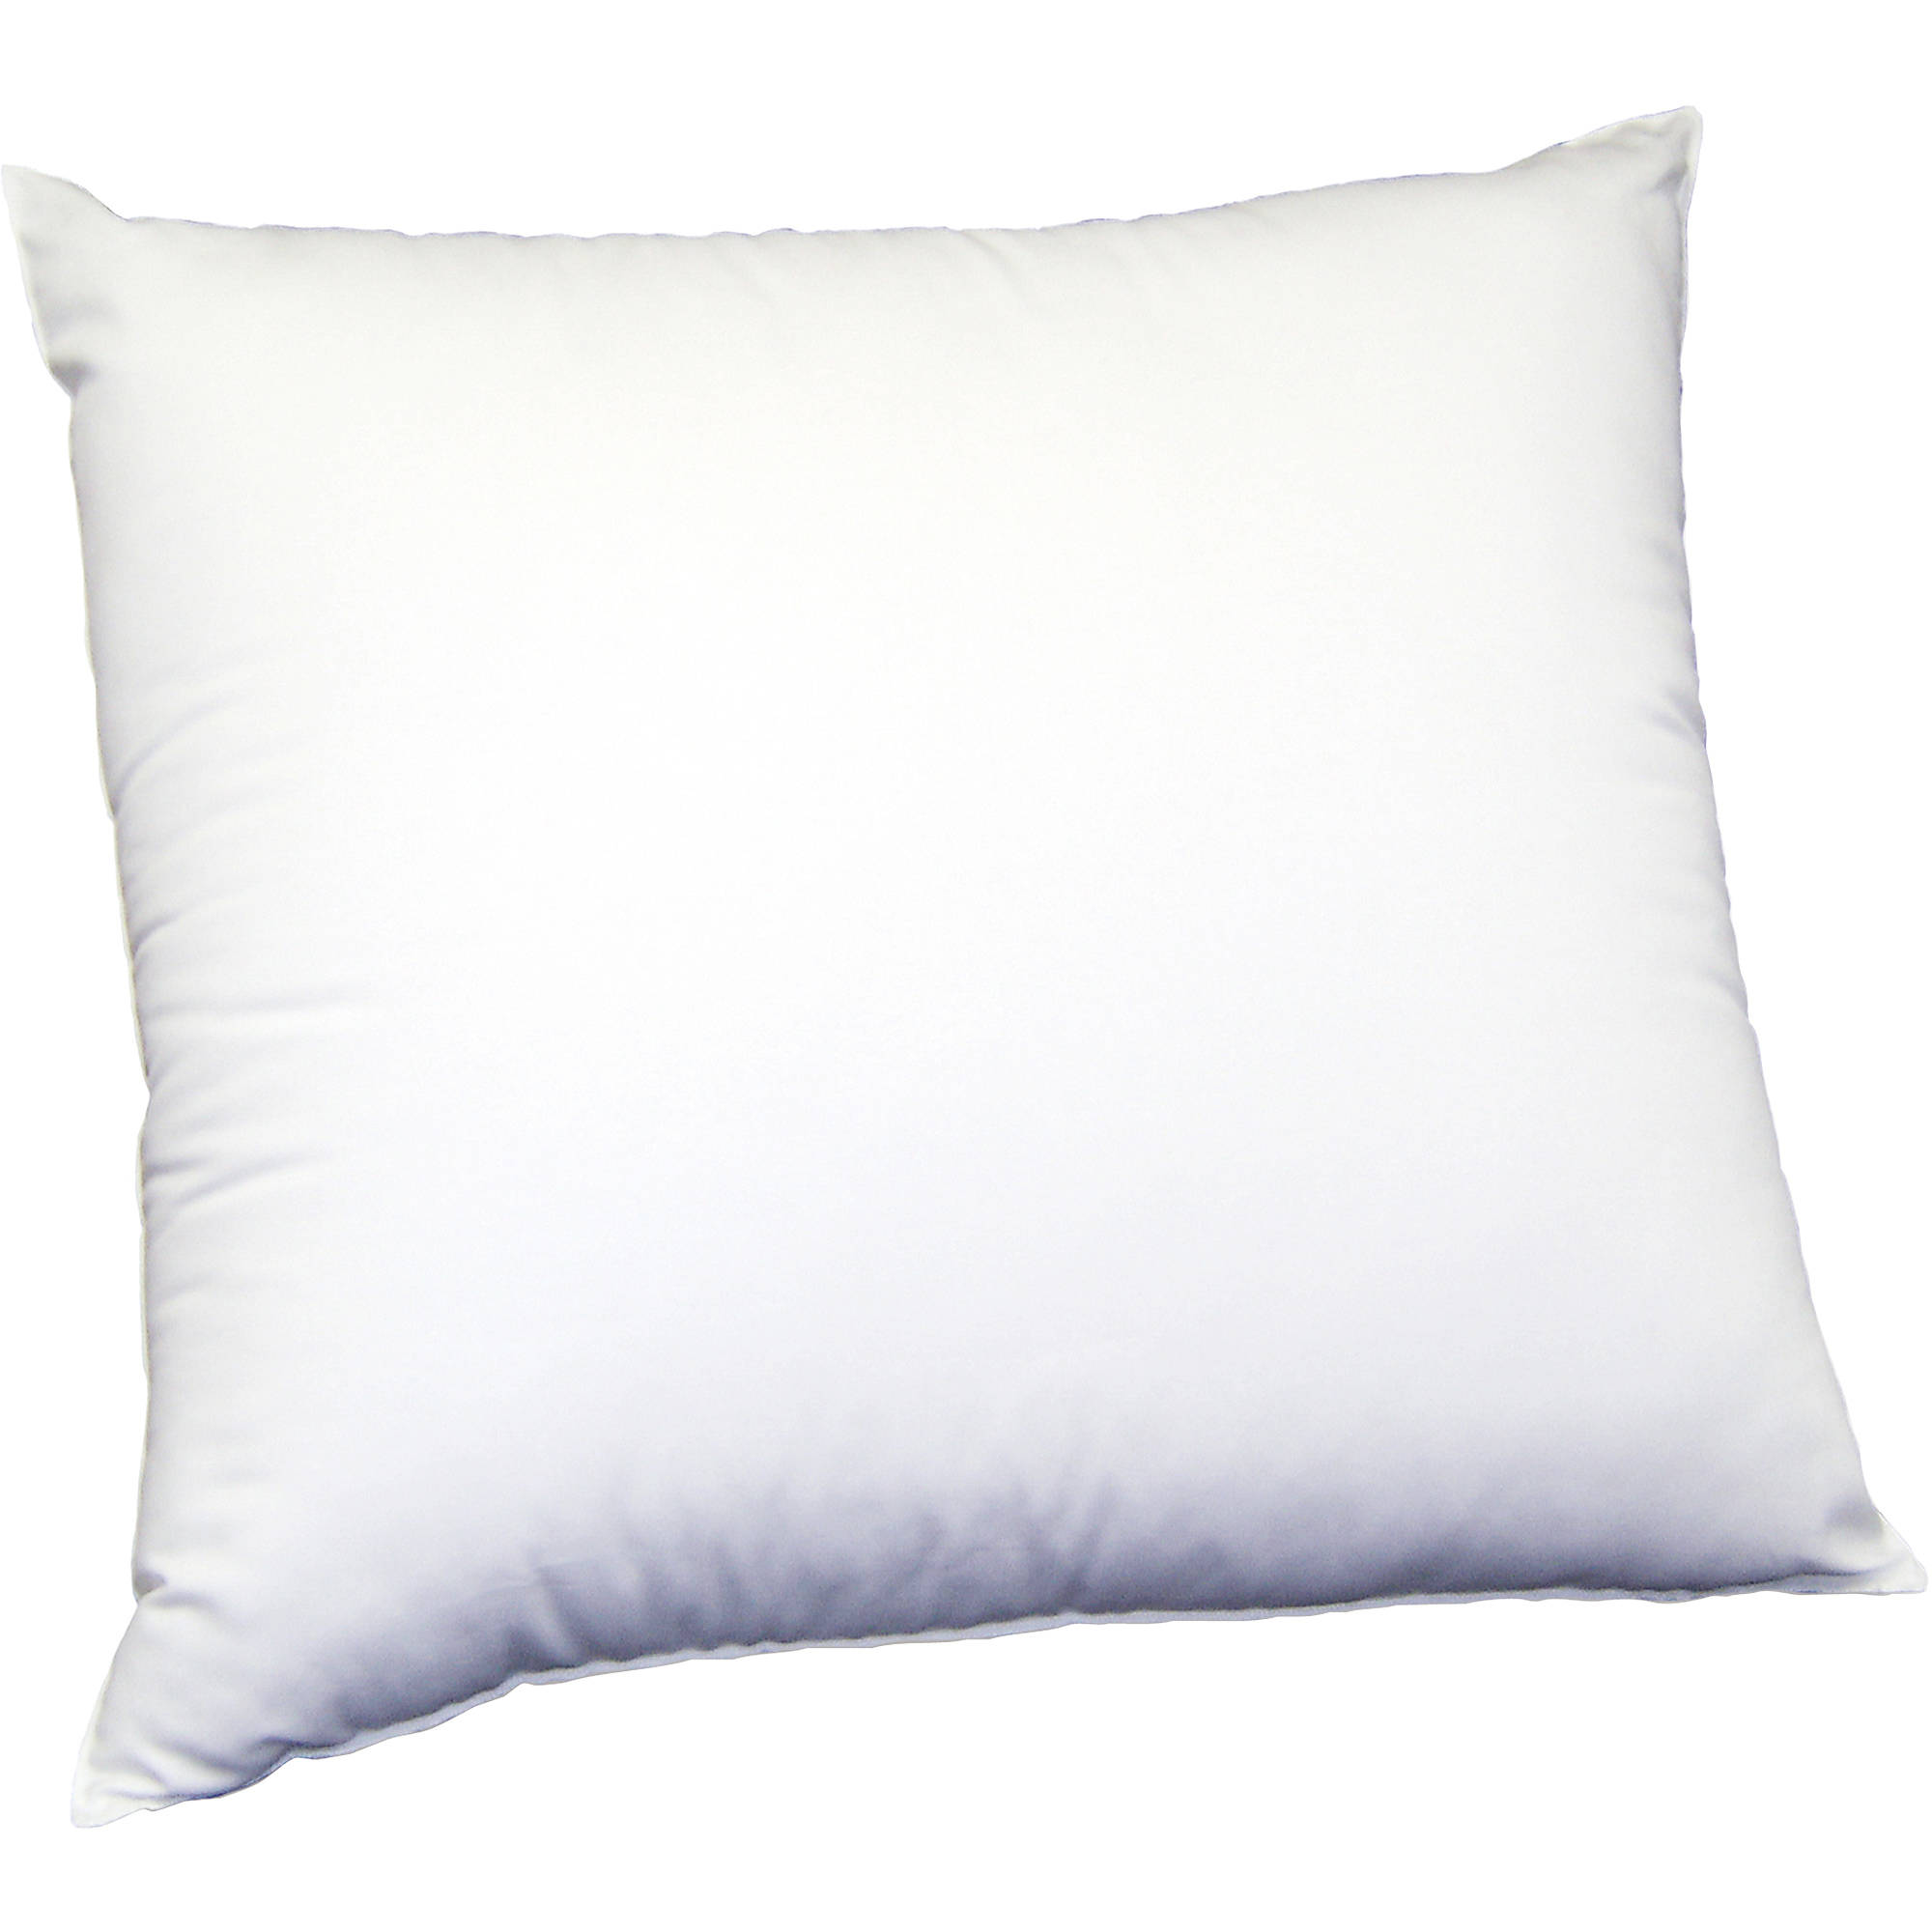 beautyrest euro pillow for square decorative shams